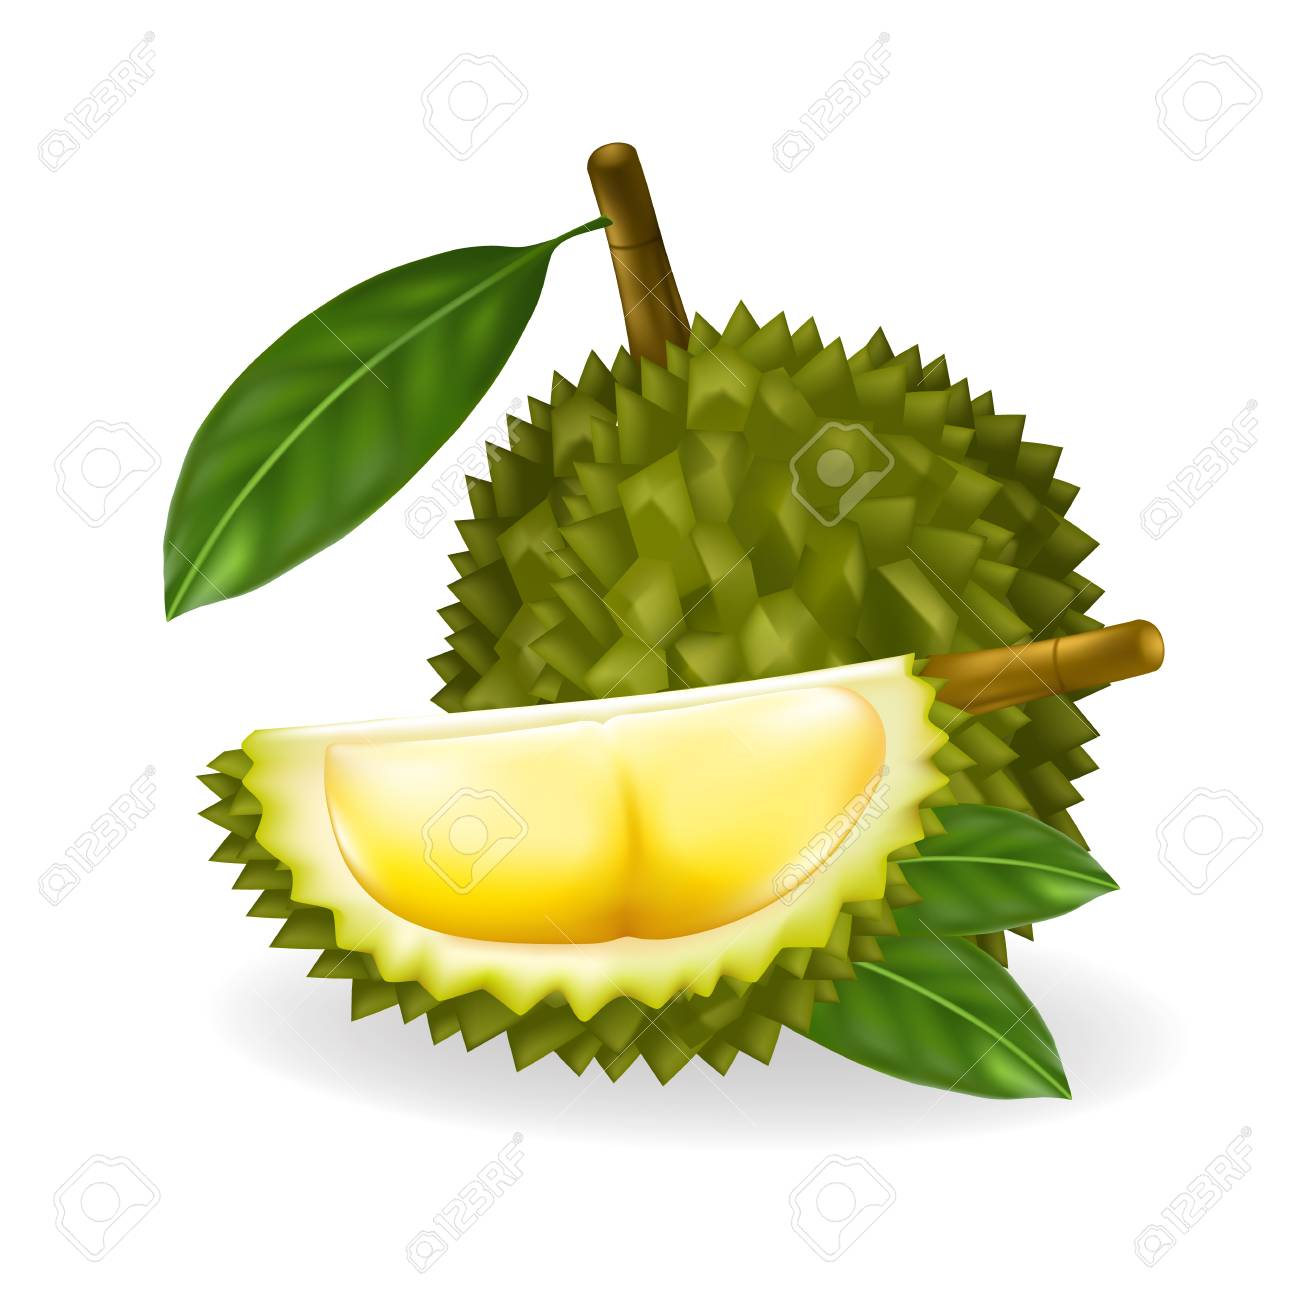 king of fruits durian isolated on white background vector illustration royalty free cliparts vectors and stock illustration image 101269864 king of fruits durian isolated on white background vector illustration